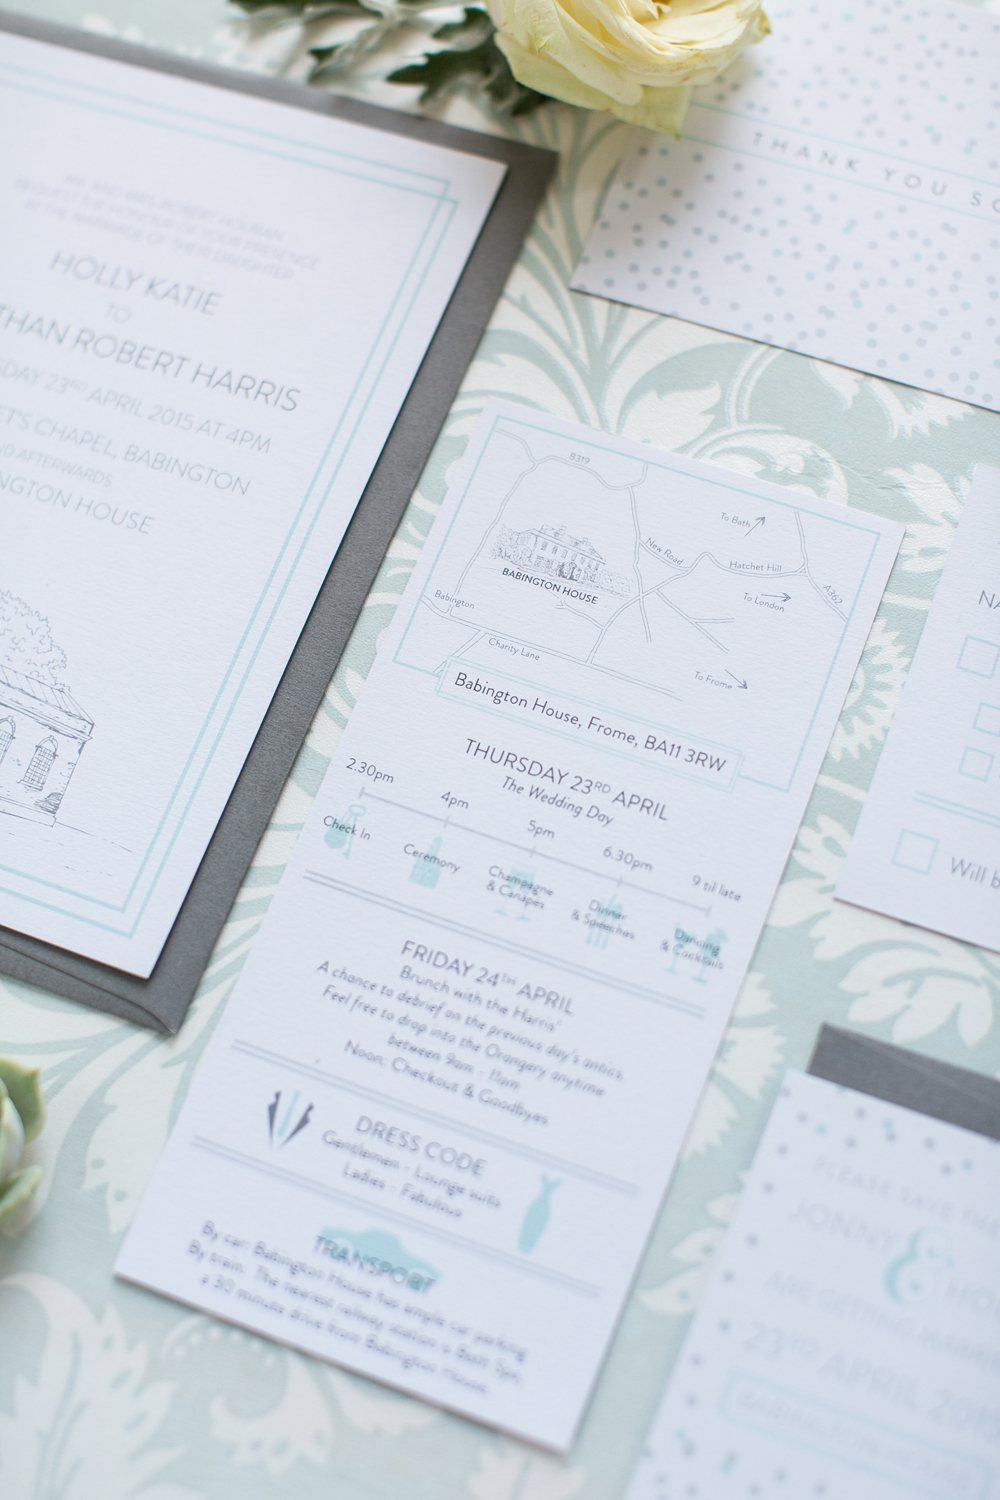 Holly and Jonny's Babington House bespoke Information card